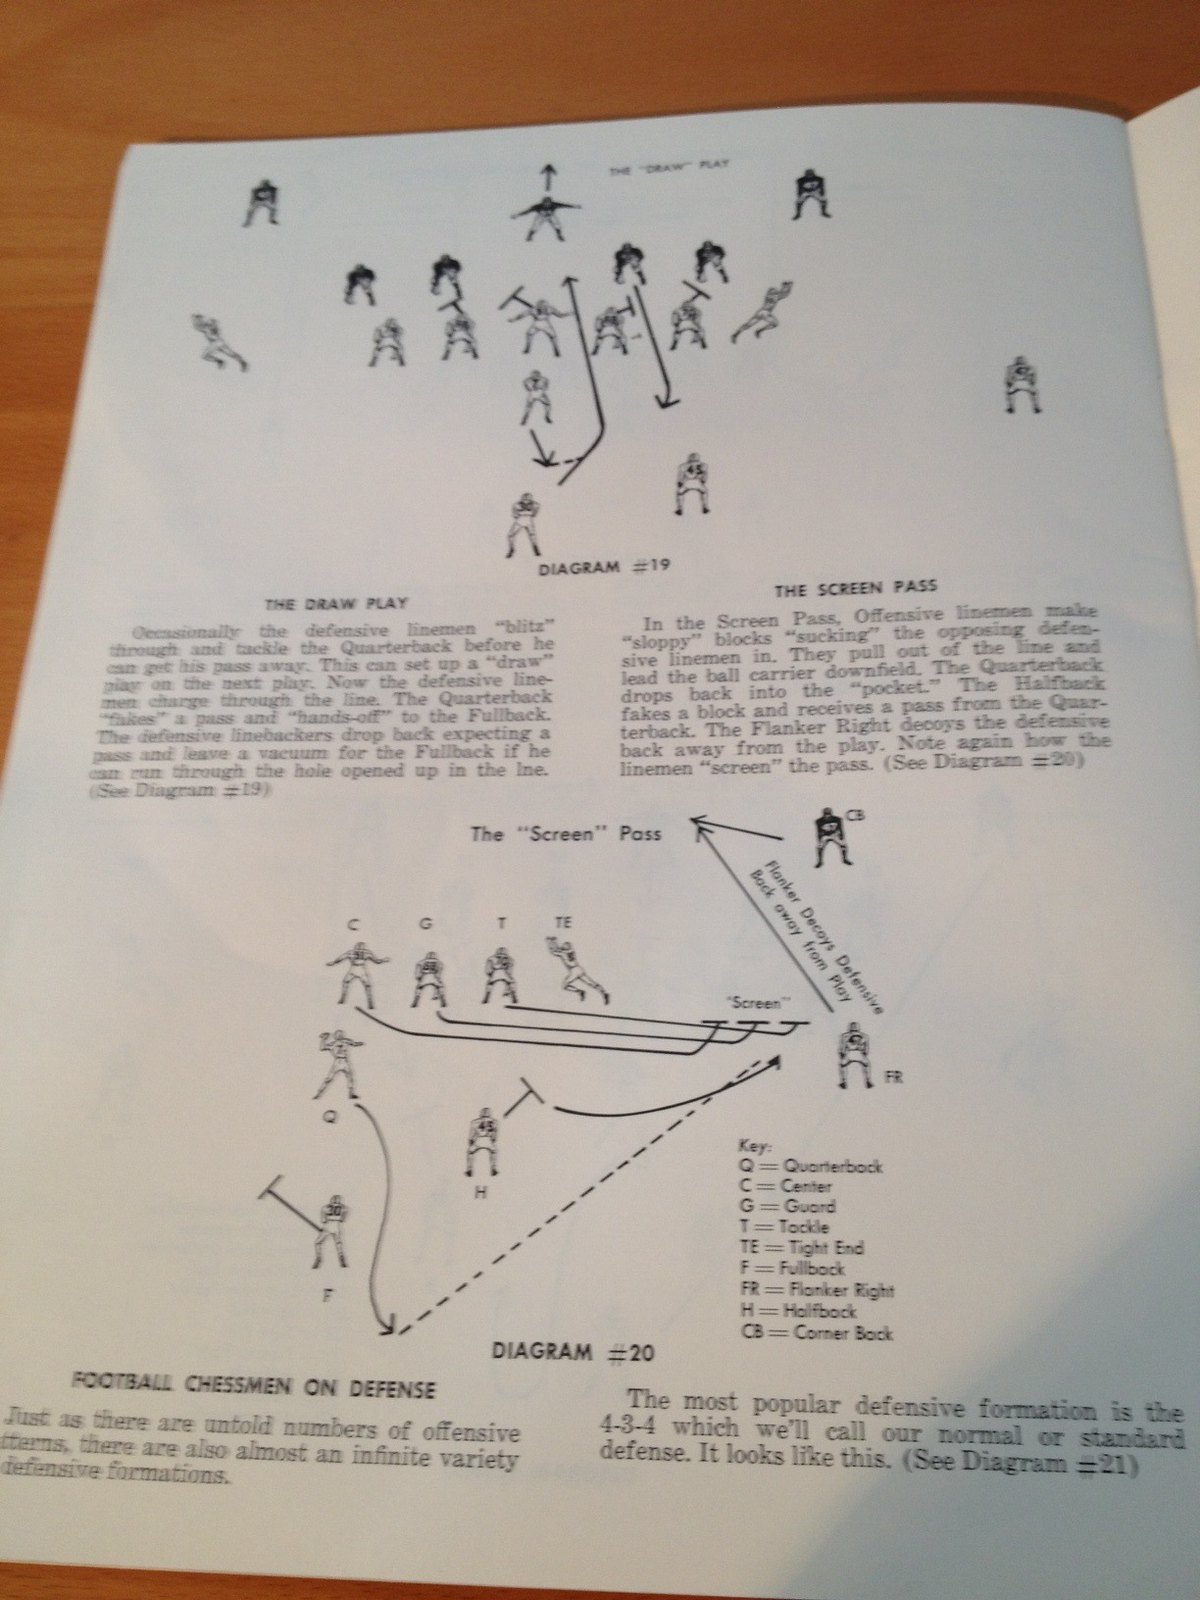 Play Action Pump Fake Checkmate Uni Watch Four Move Diagram Inside The Playbook